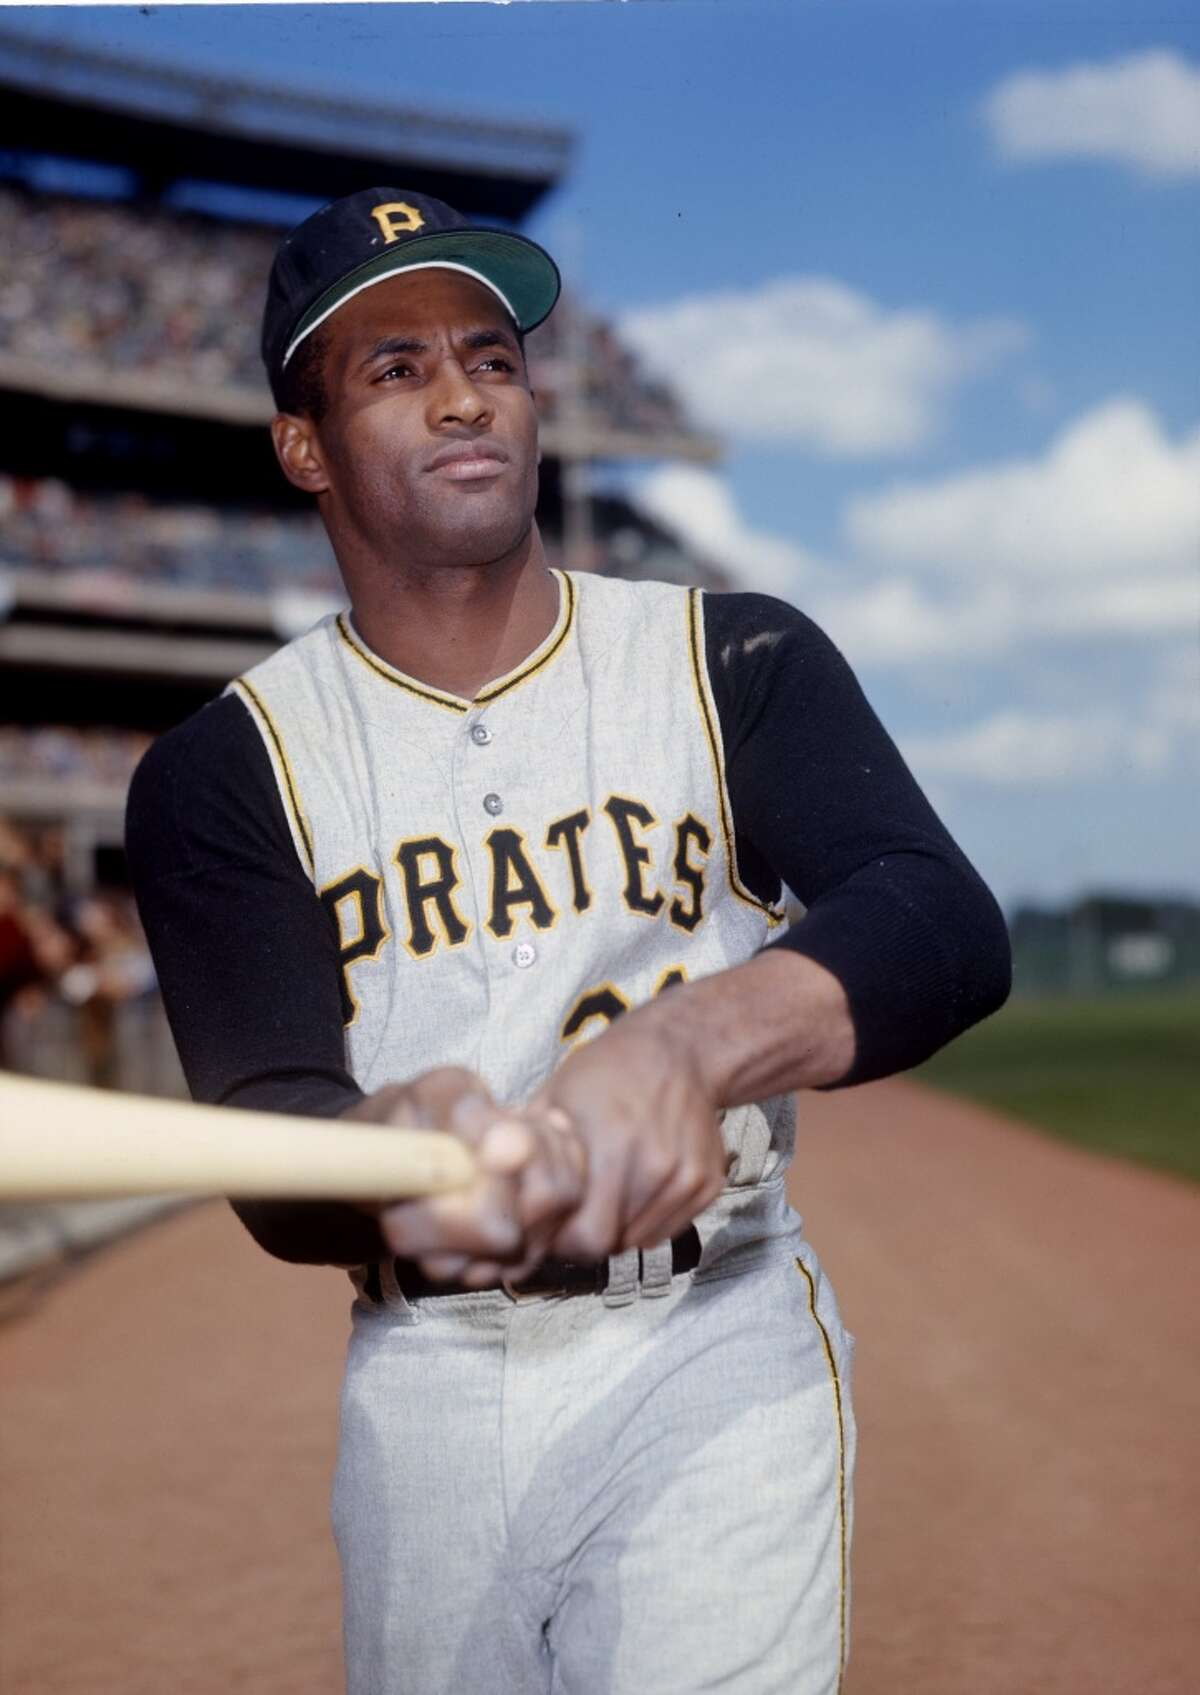 Roberto Clemente This baseball great has avoided the Dec. 31 curse. He died in 1972 in a plane crash delivering aid to Nicaraguan earthquake victims.